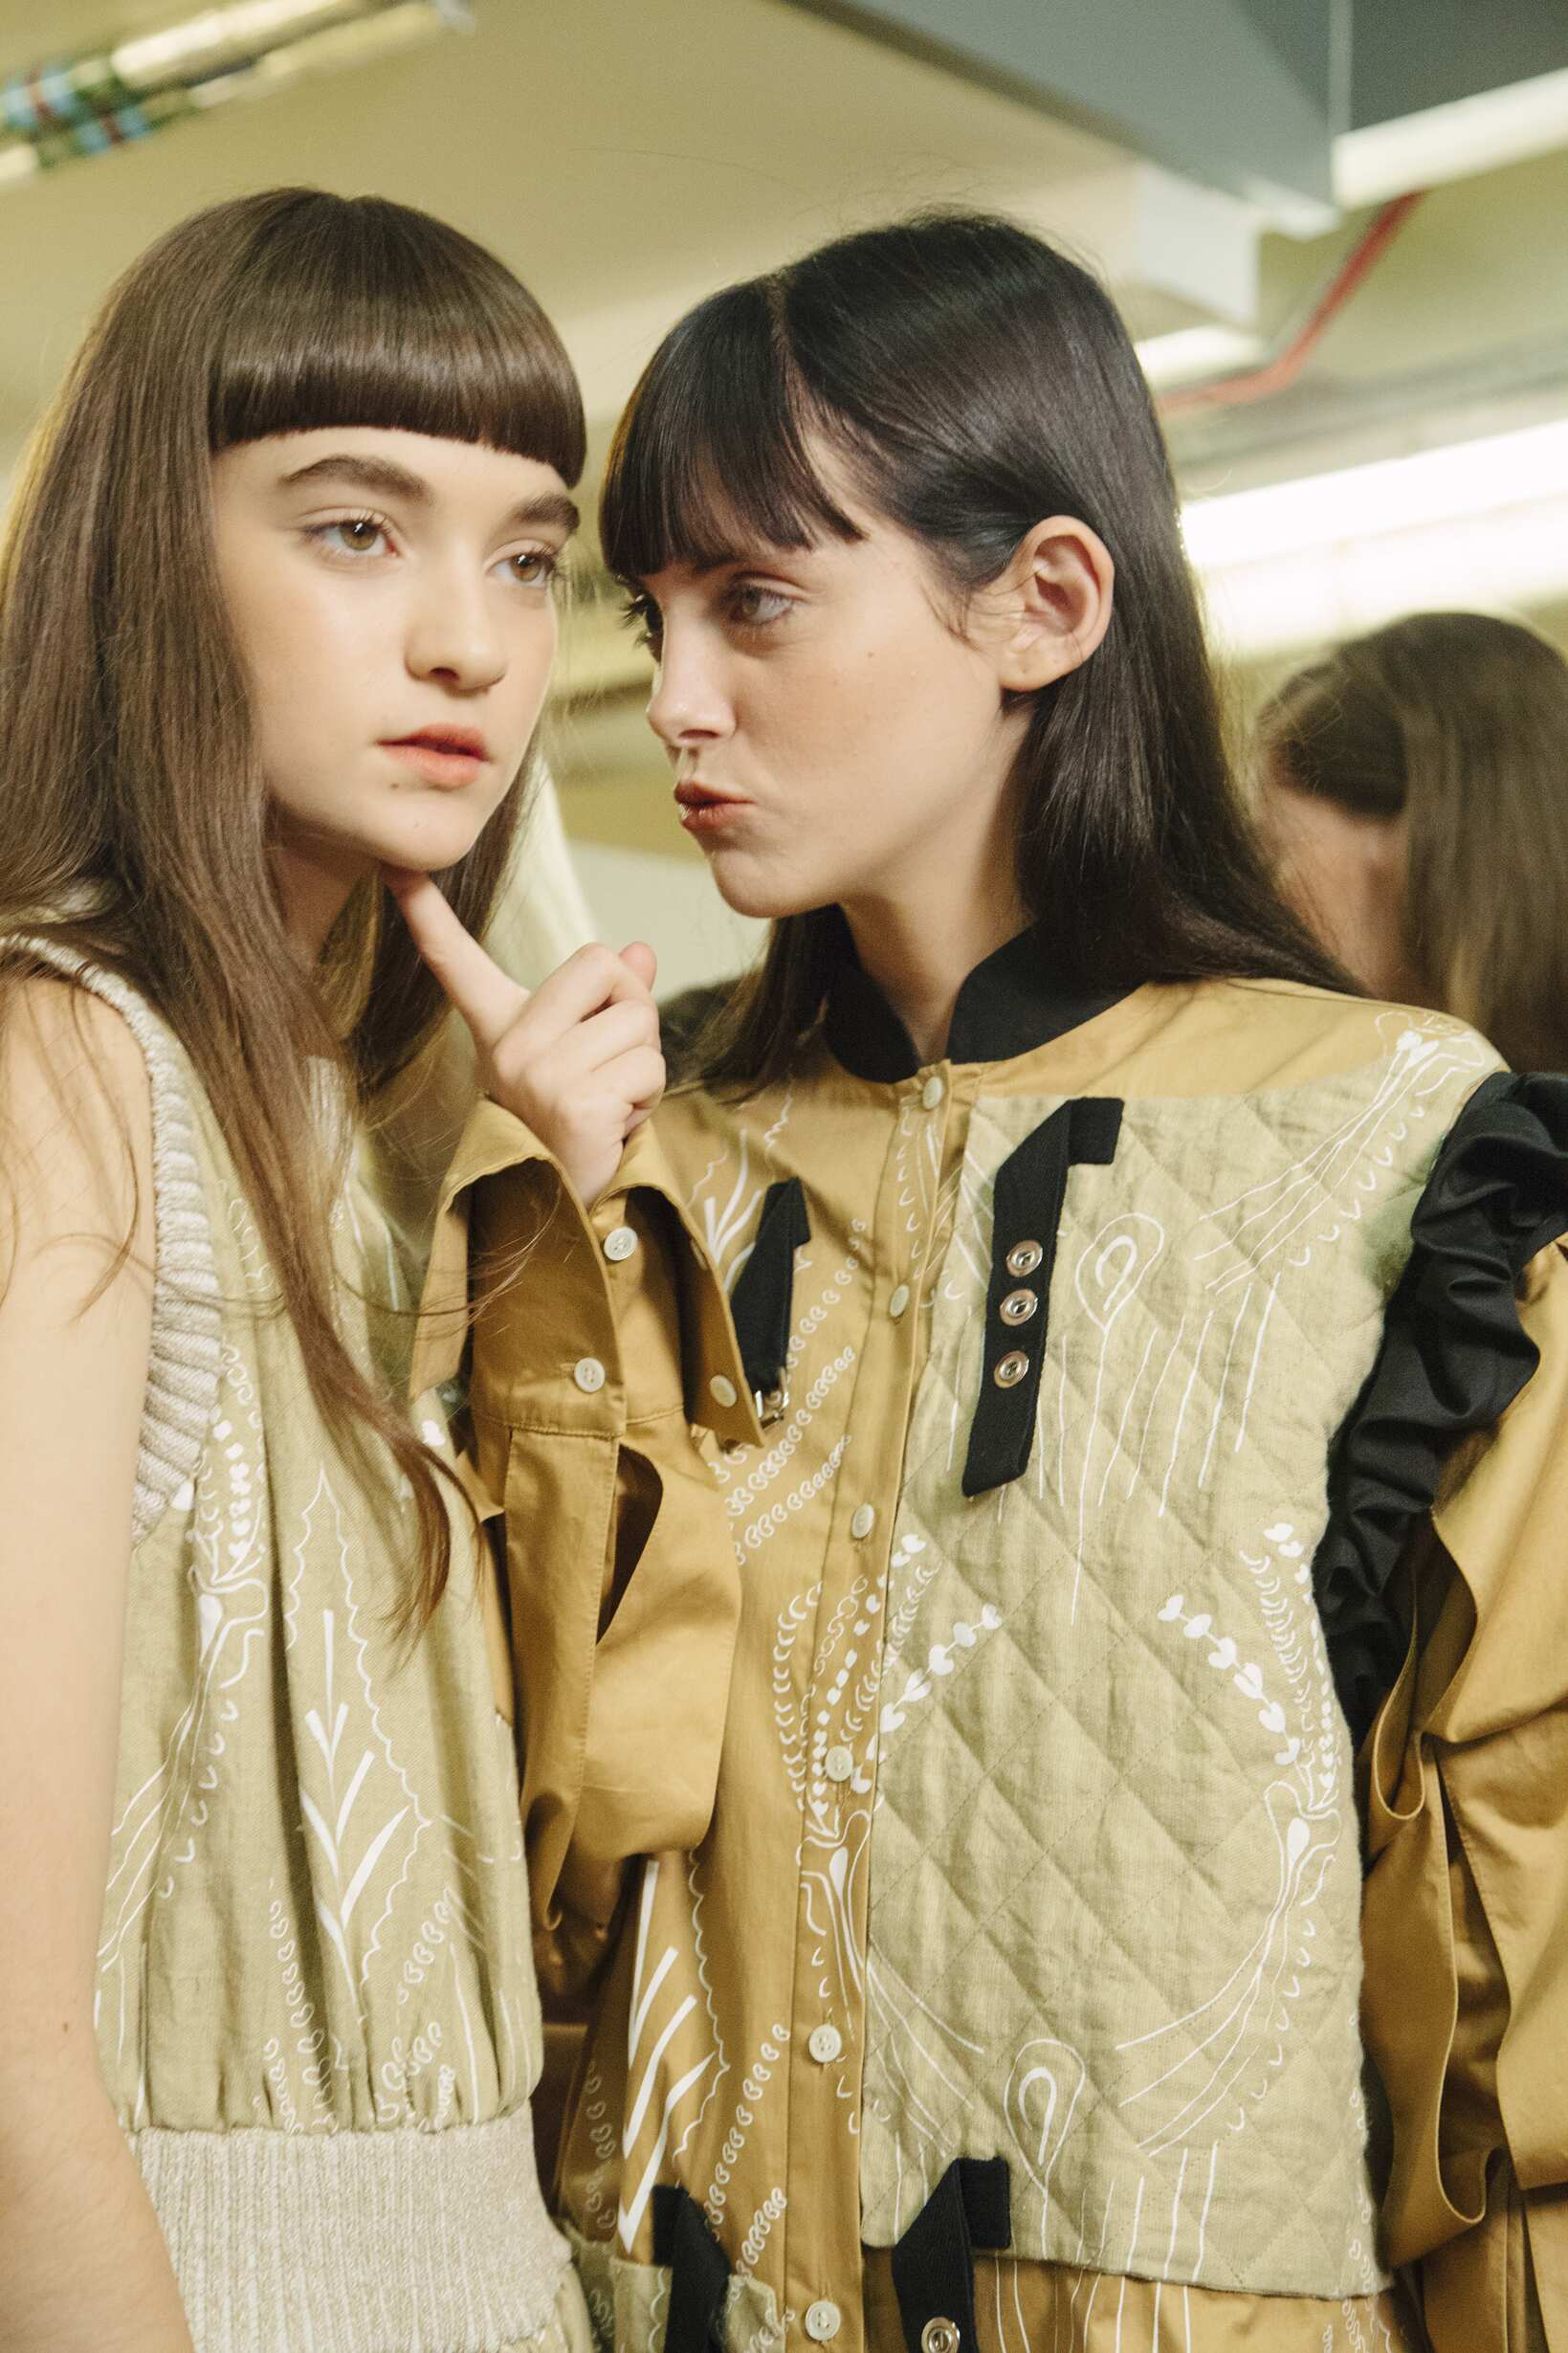 Models J.W. Anderson Backstage